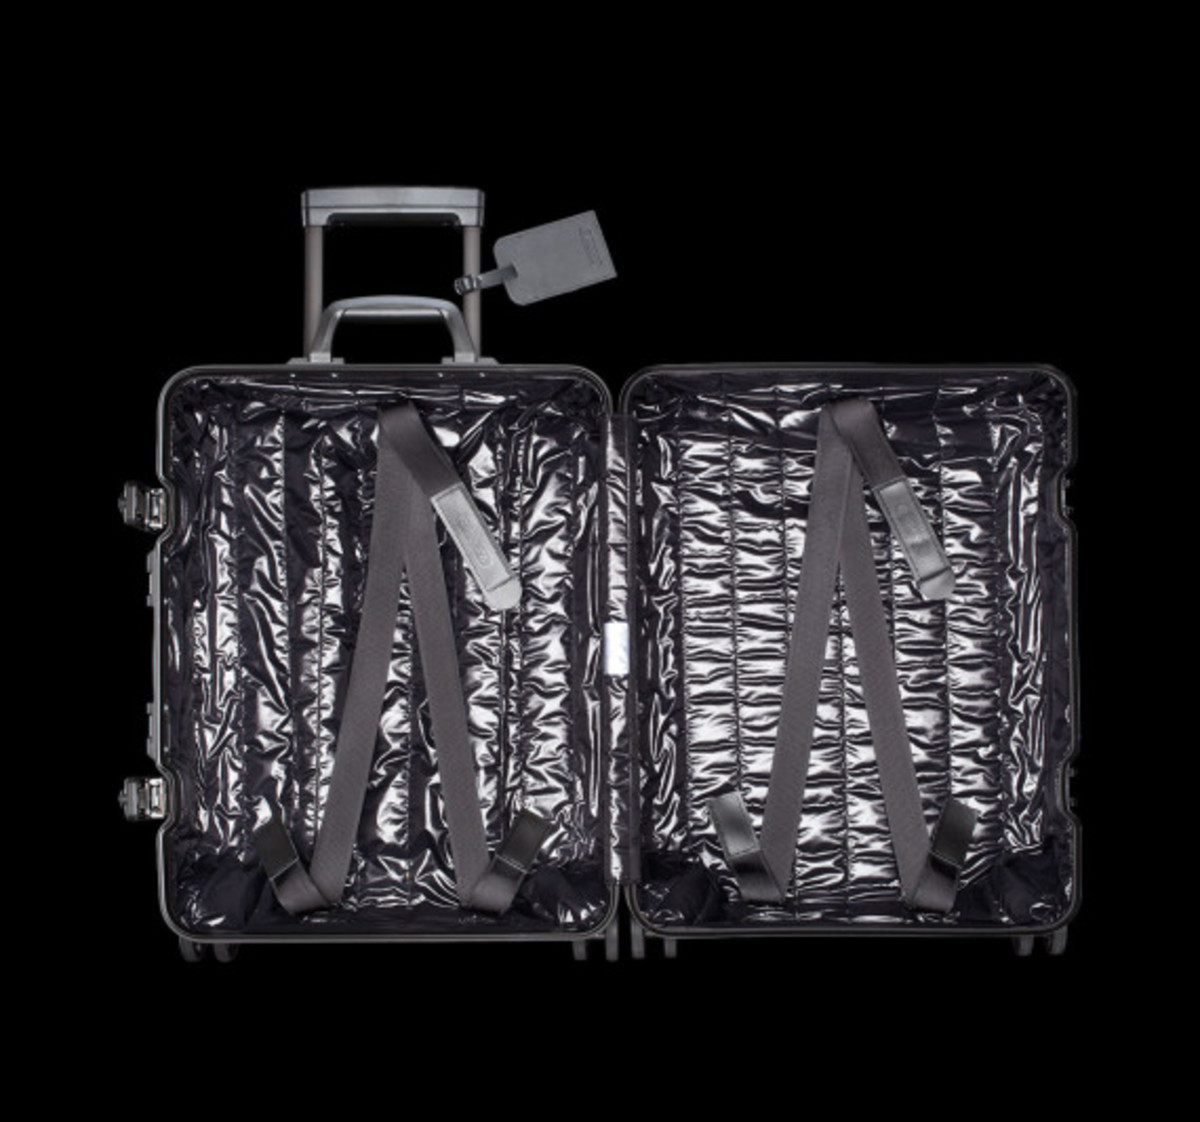 rimowa-and-moncler-luggage-collection-05